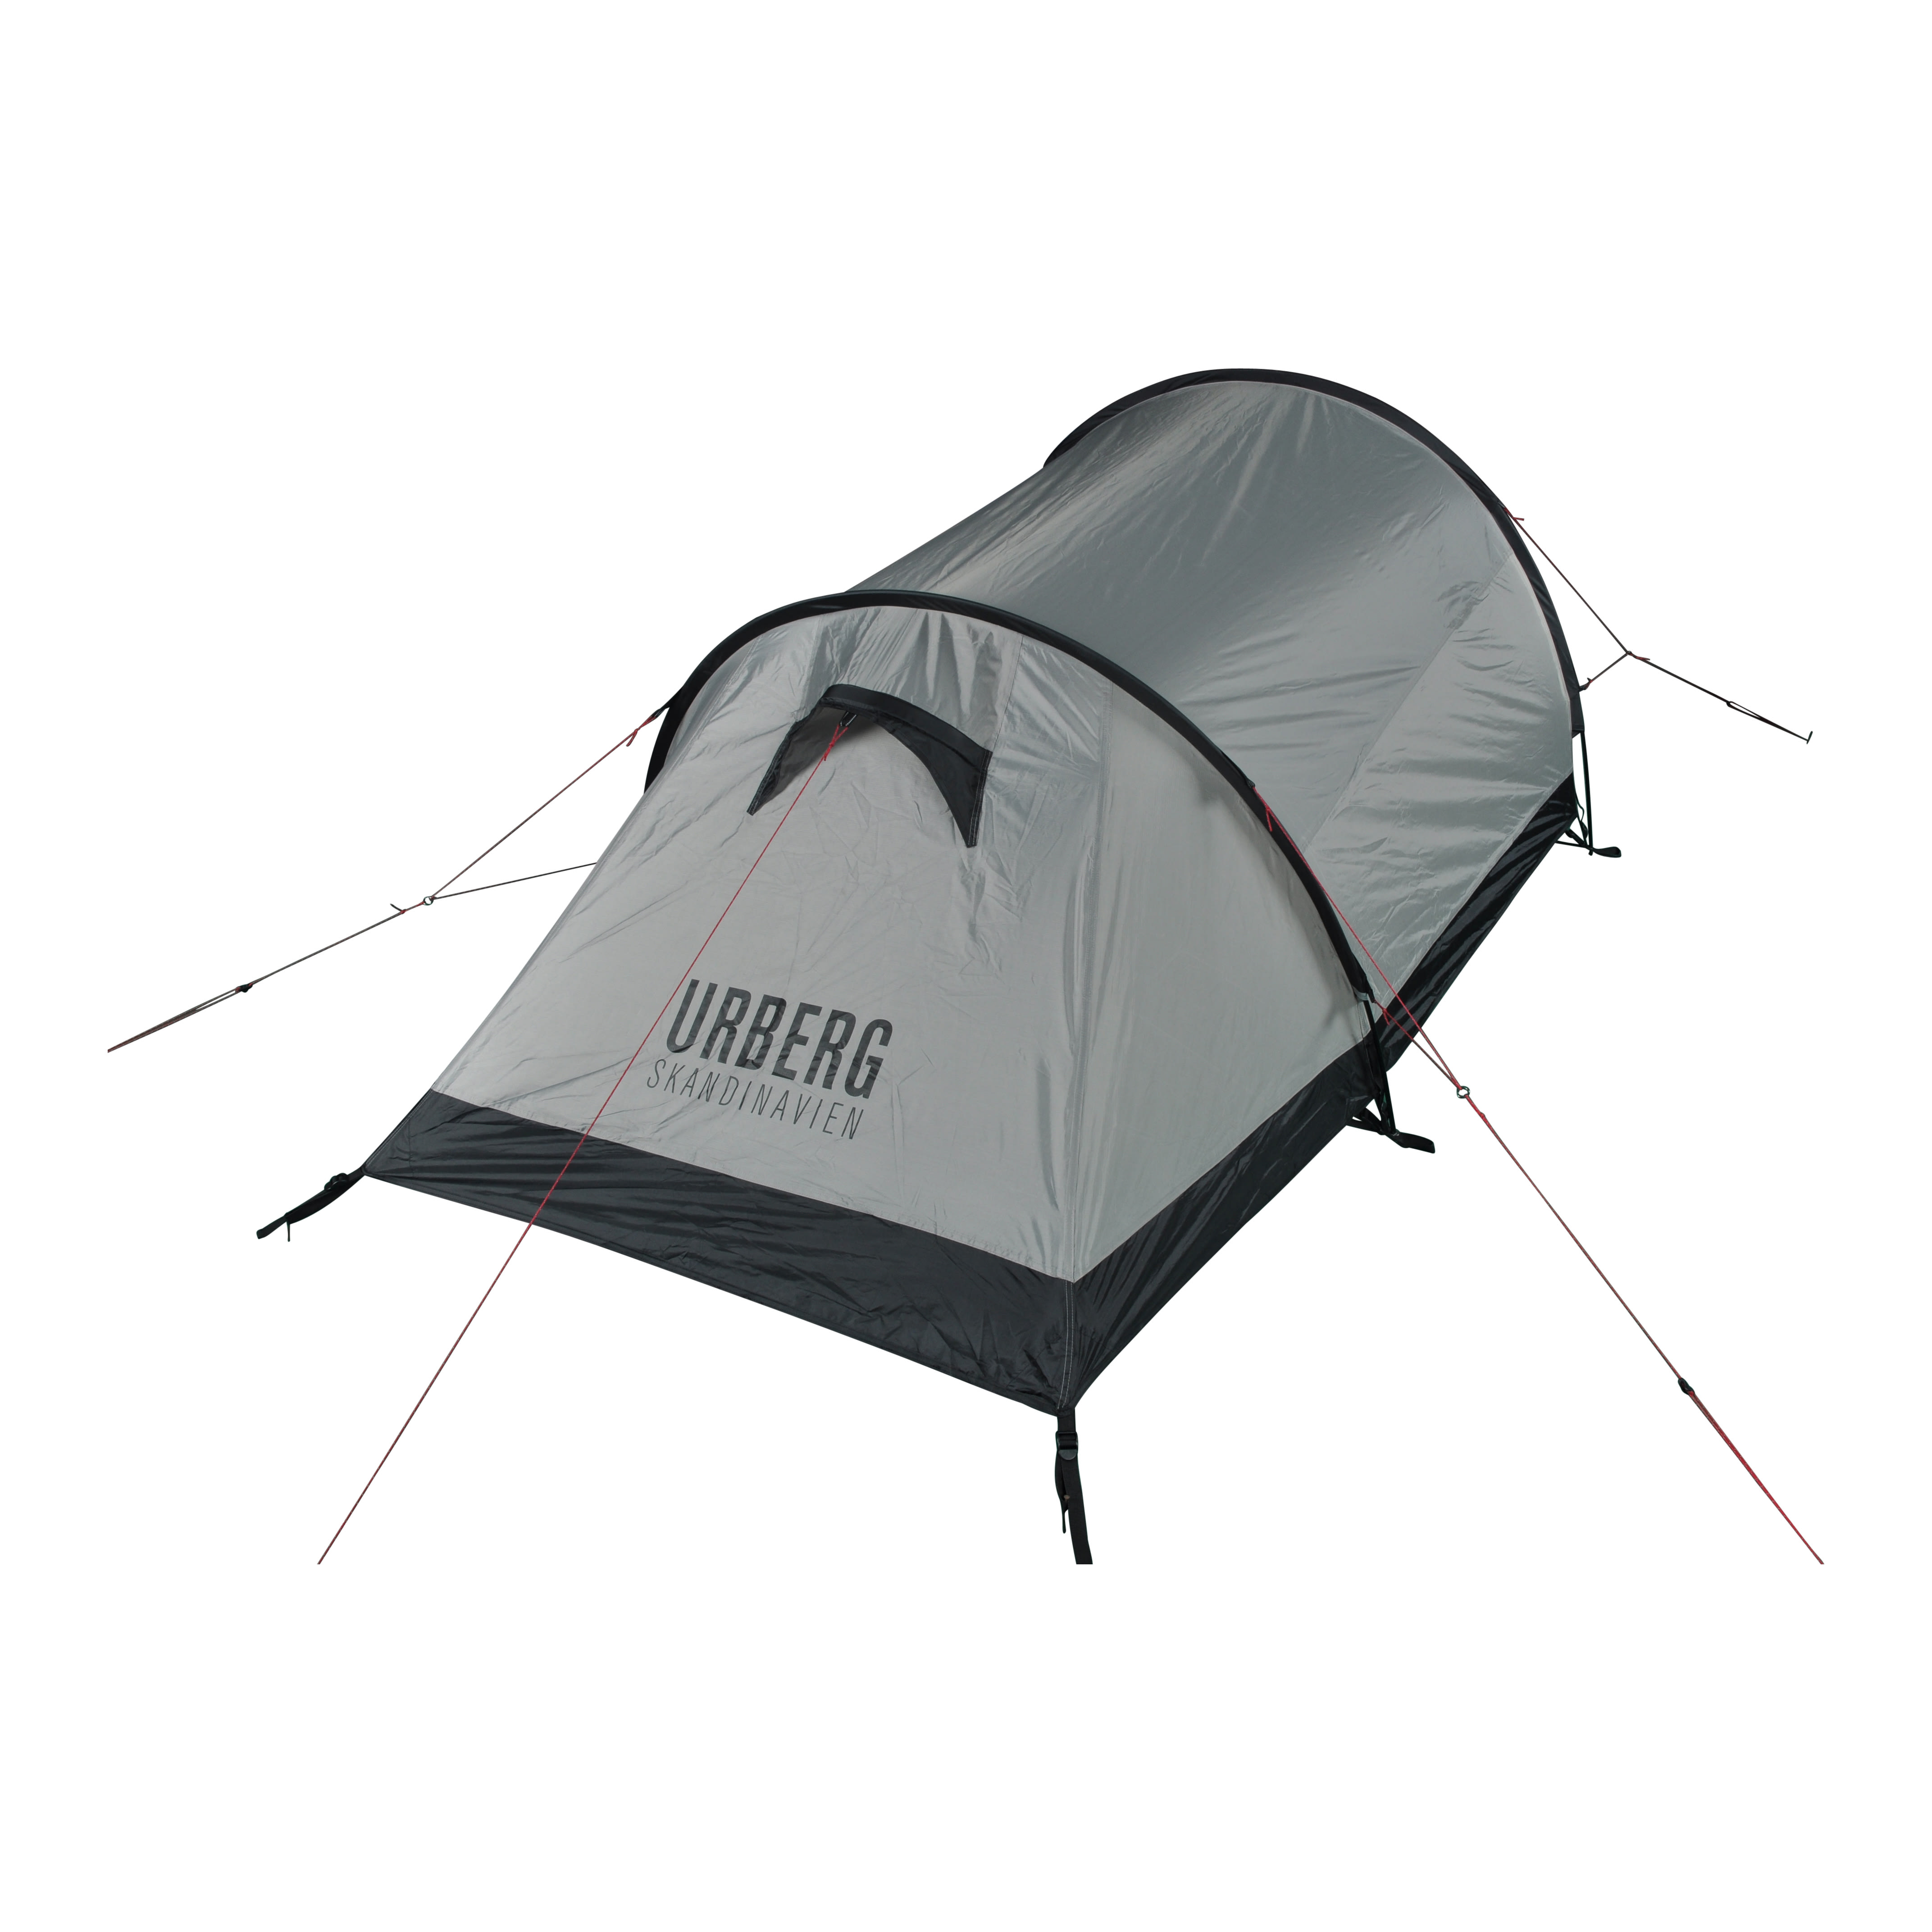 Kjøp Urberg 2 Person Tunnel Tent G4 fra Outnorth